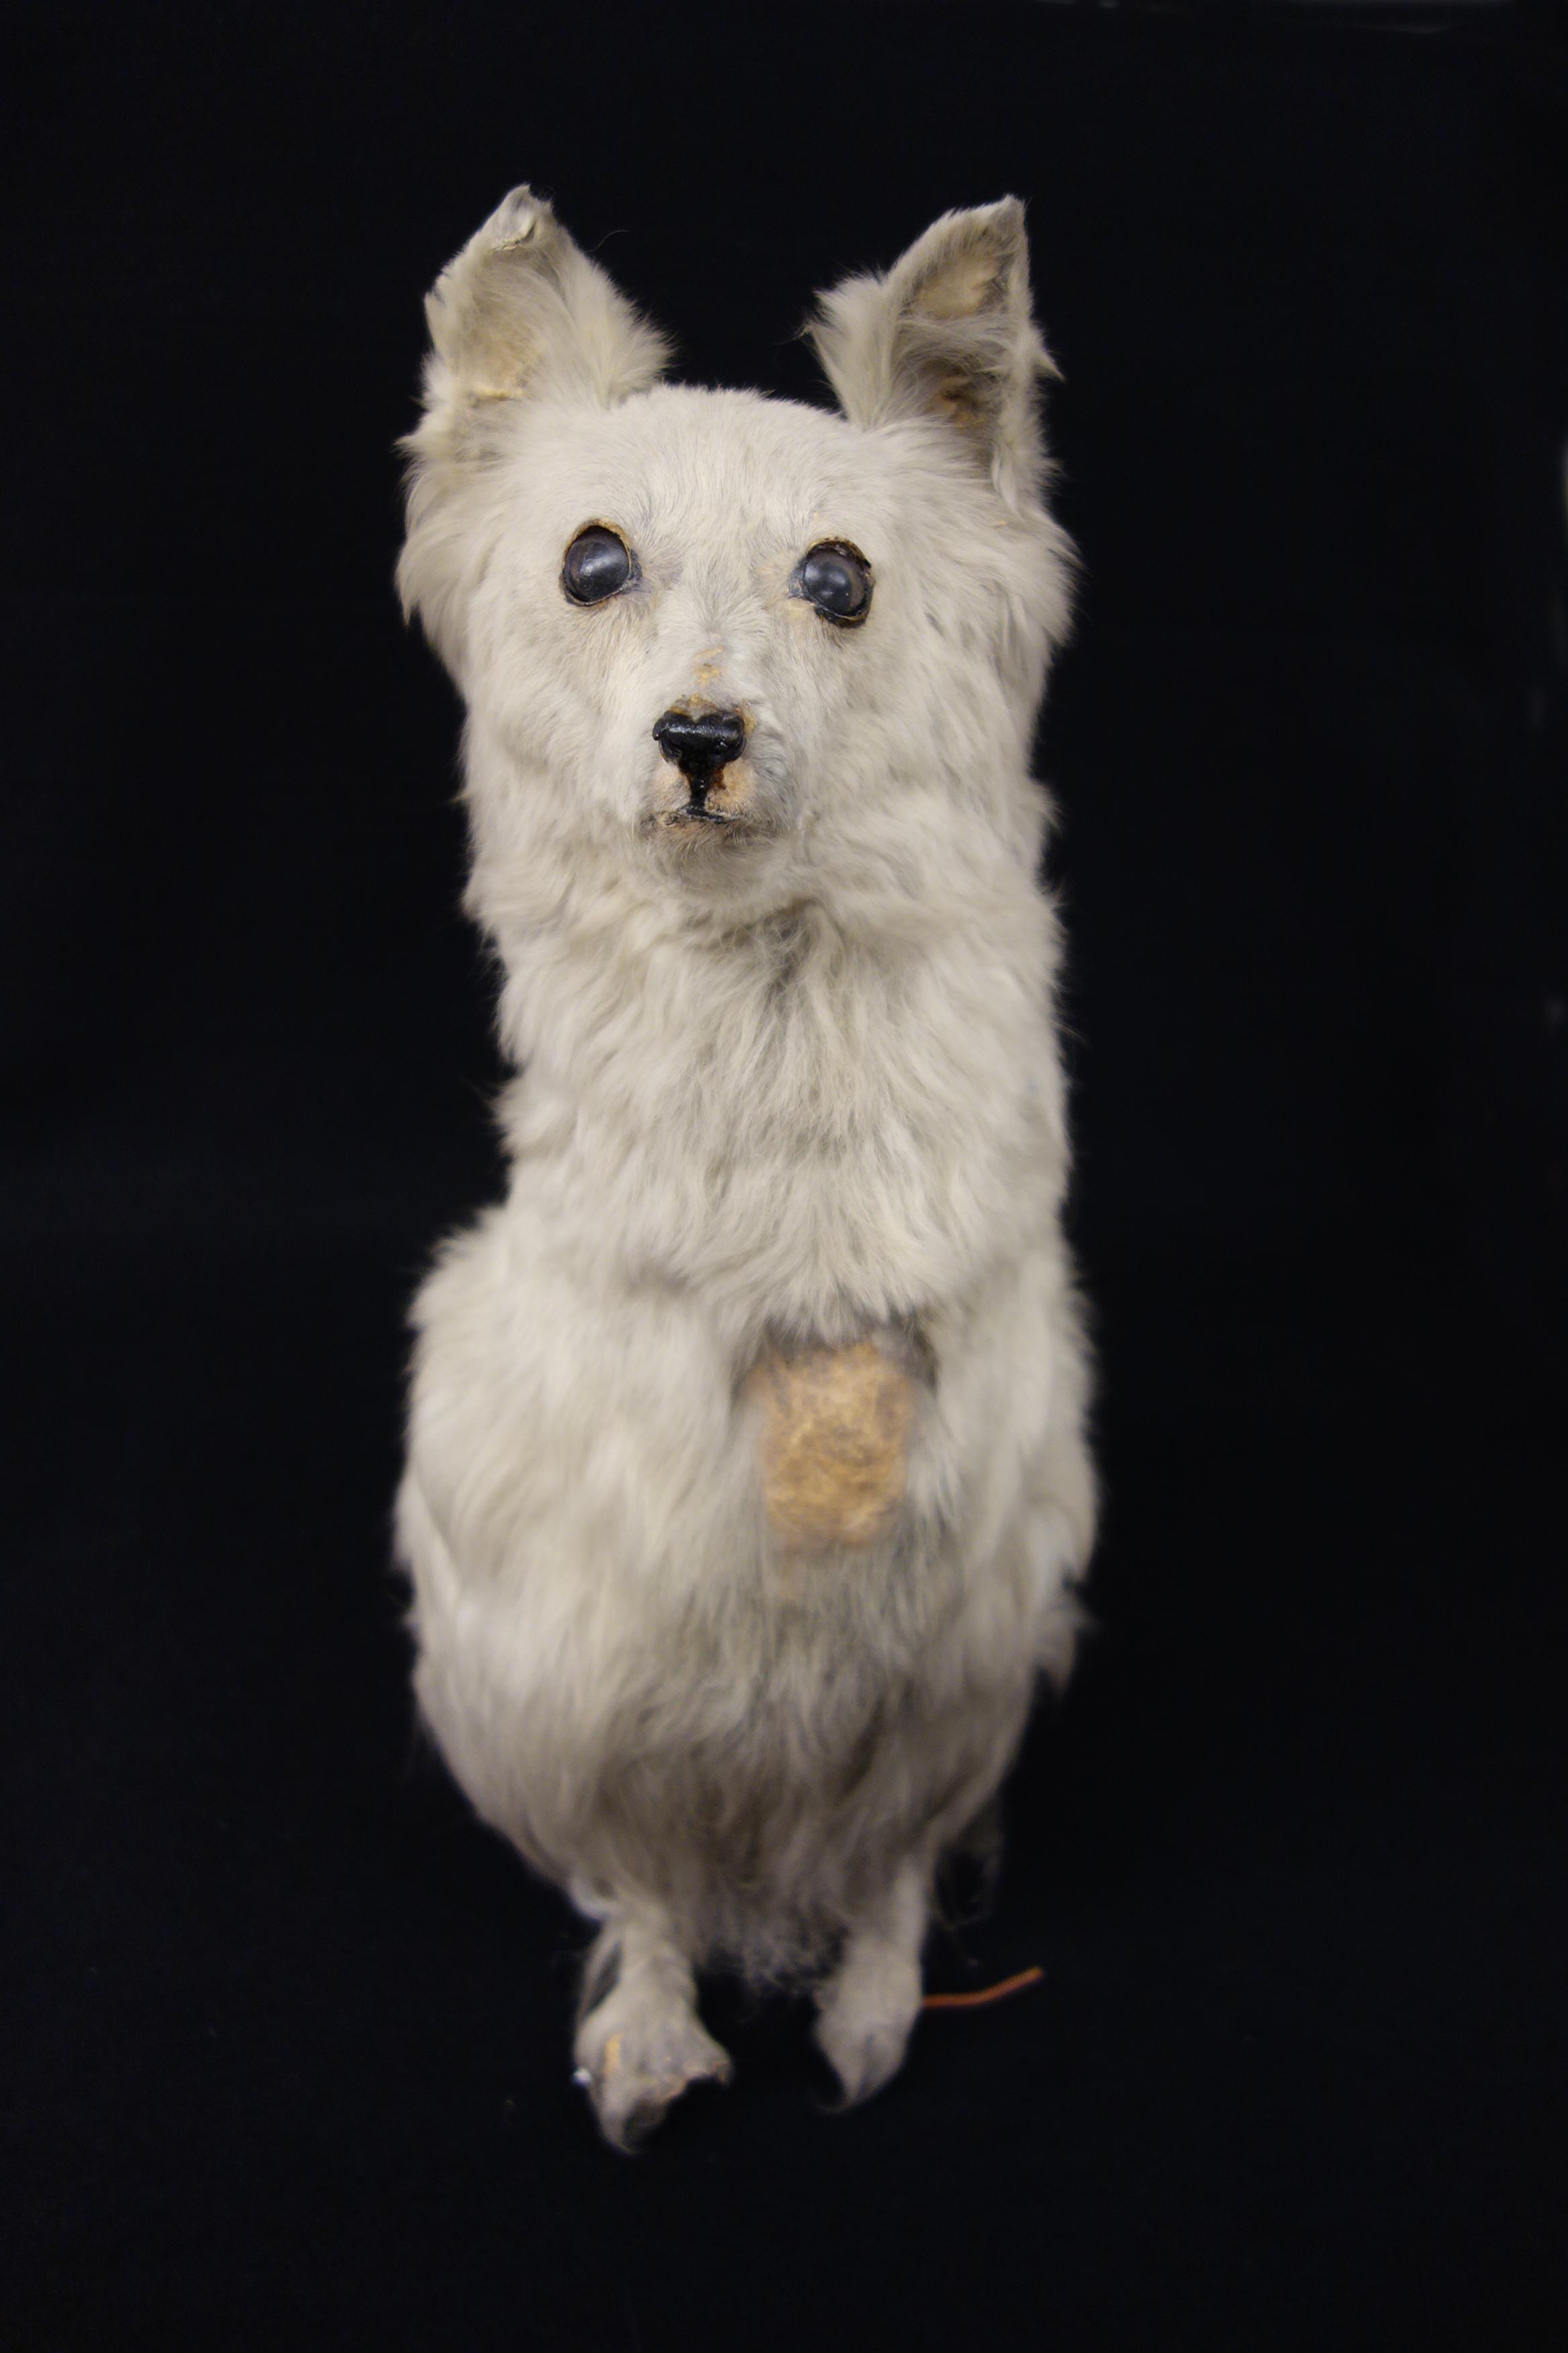 Skipper, Thomas Barnett's two-legged dog. A white terrier type dog with only two legs. The front two legs are missing because of a birth defect. It was taxidermied and stands pertly on its hind legs. There is some crystaline powder and wear on Skipper's chest, nose and ears.